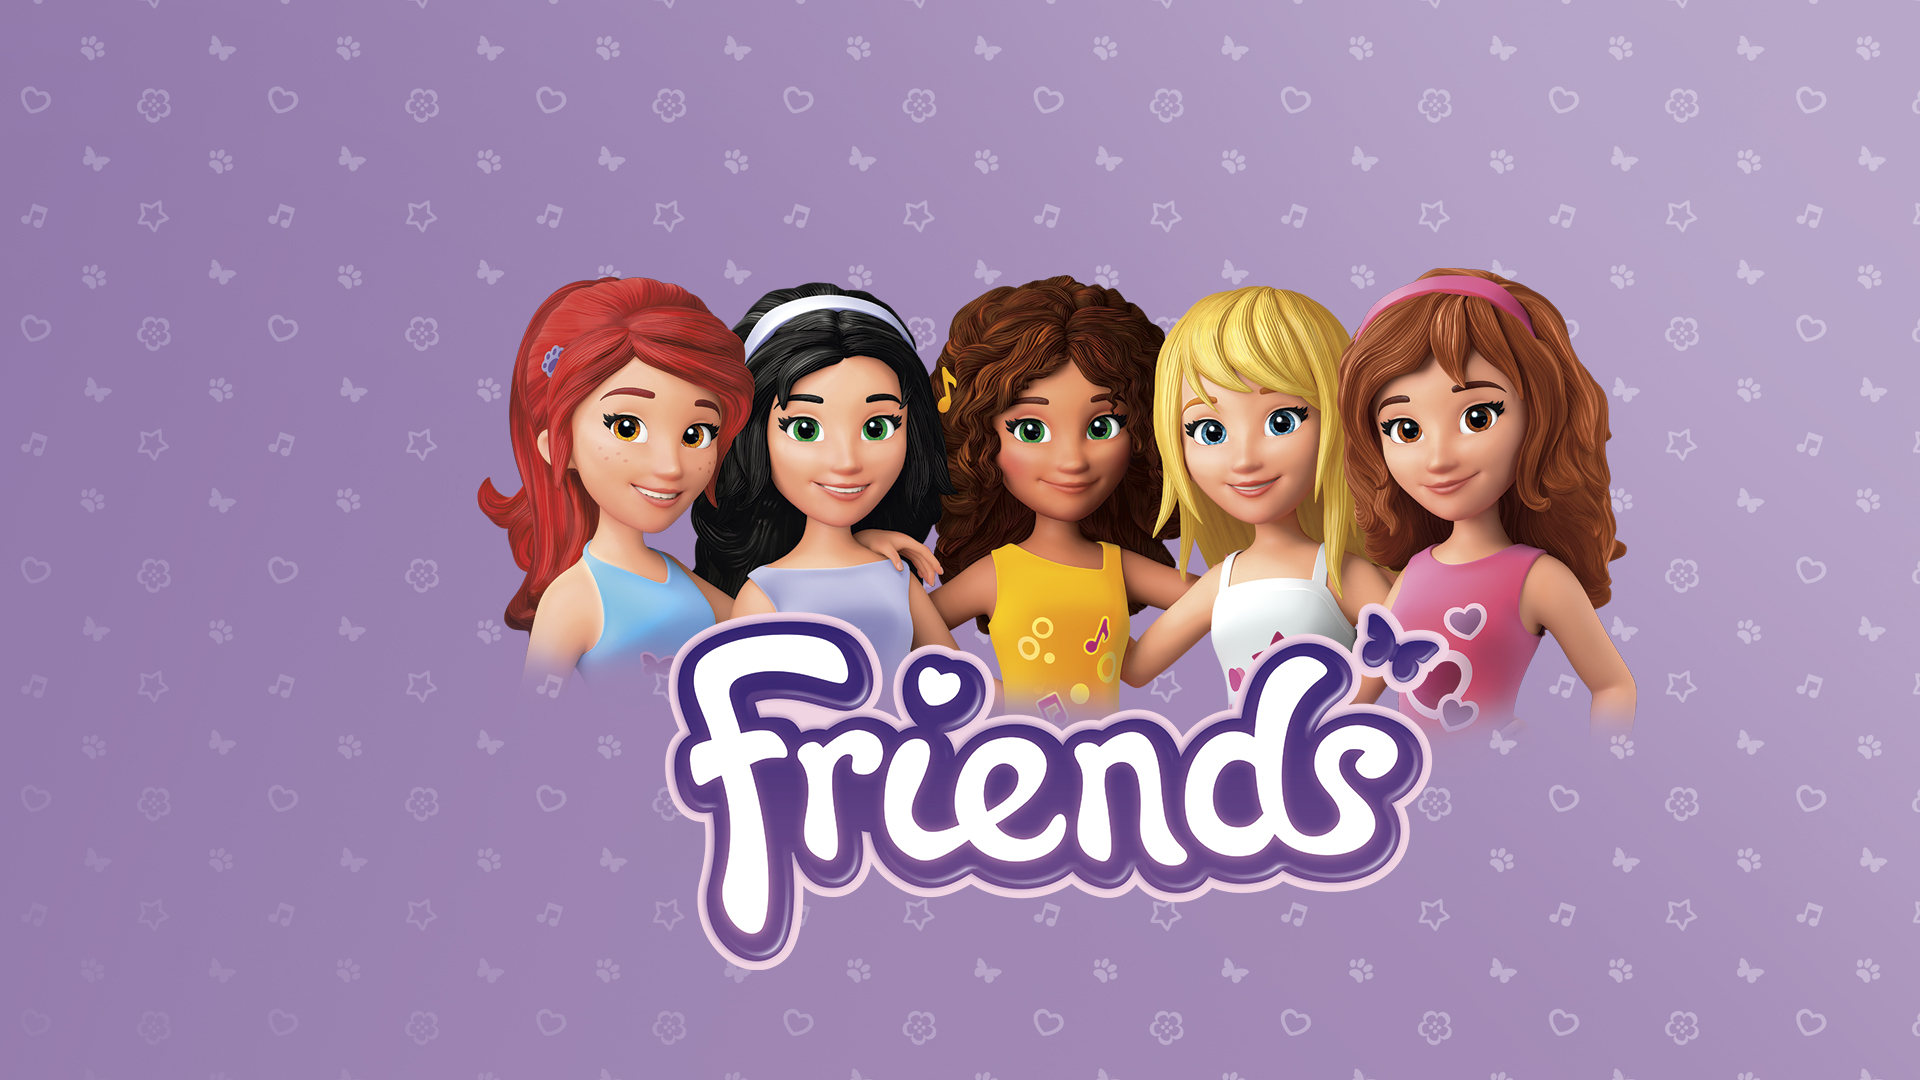 Lego Friends Wallpaper Wallpapersafari